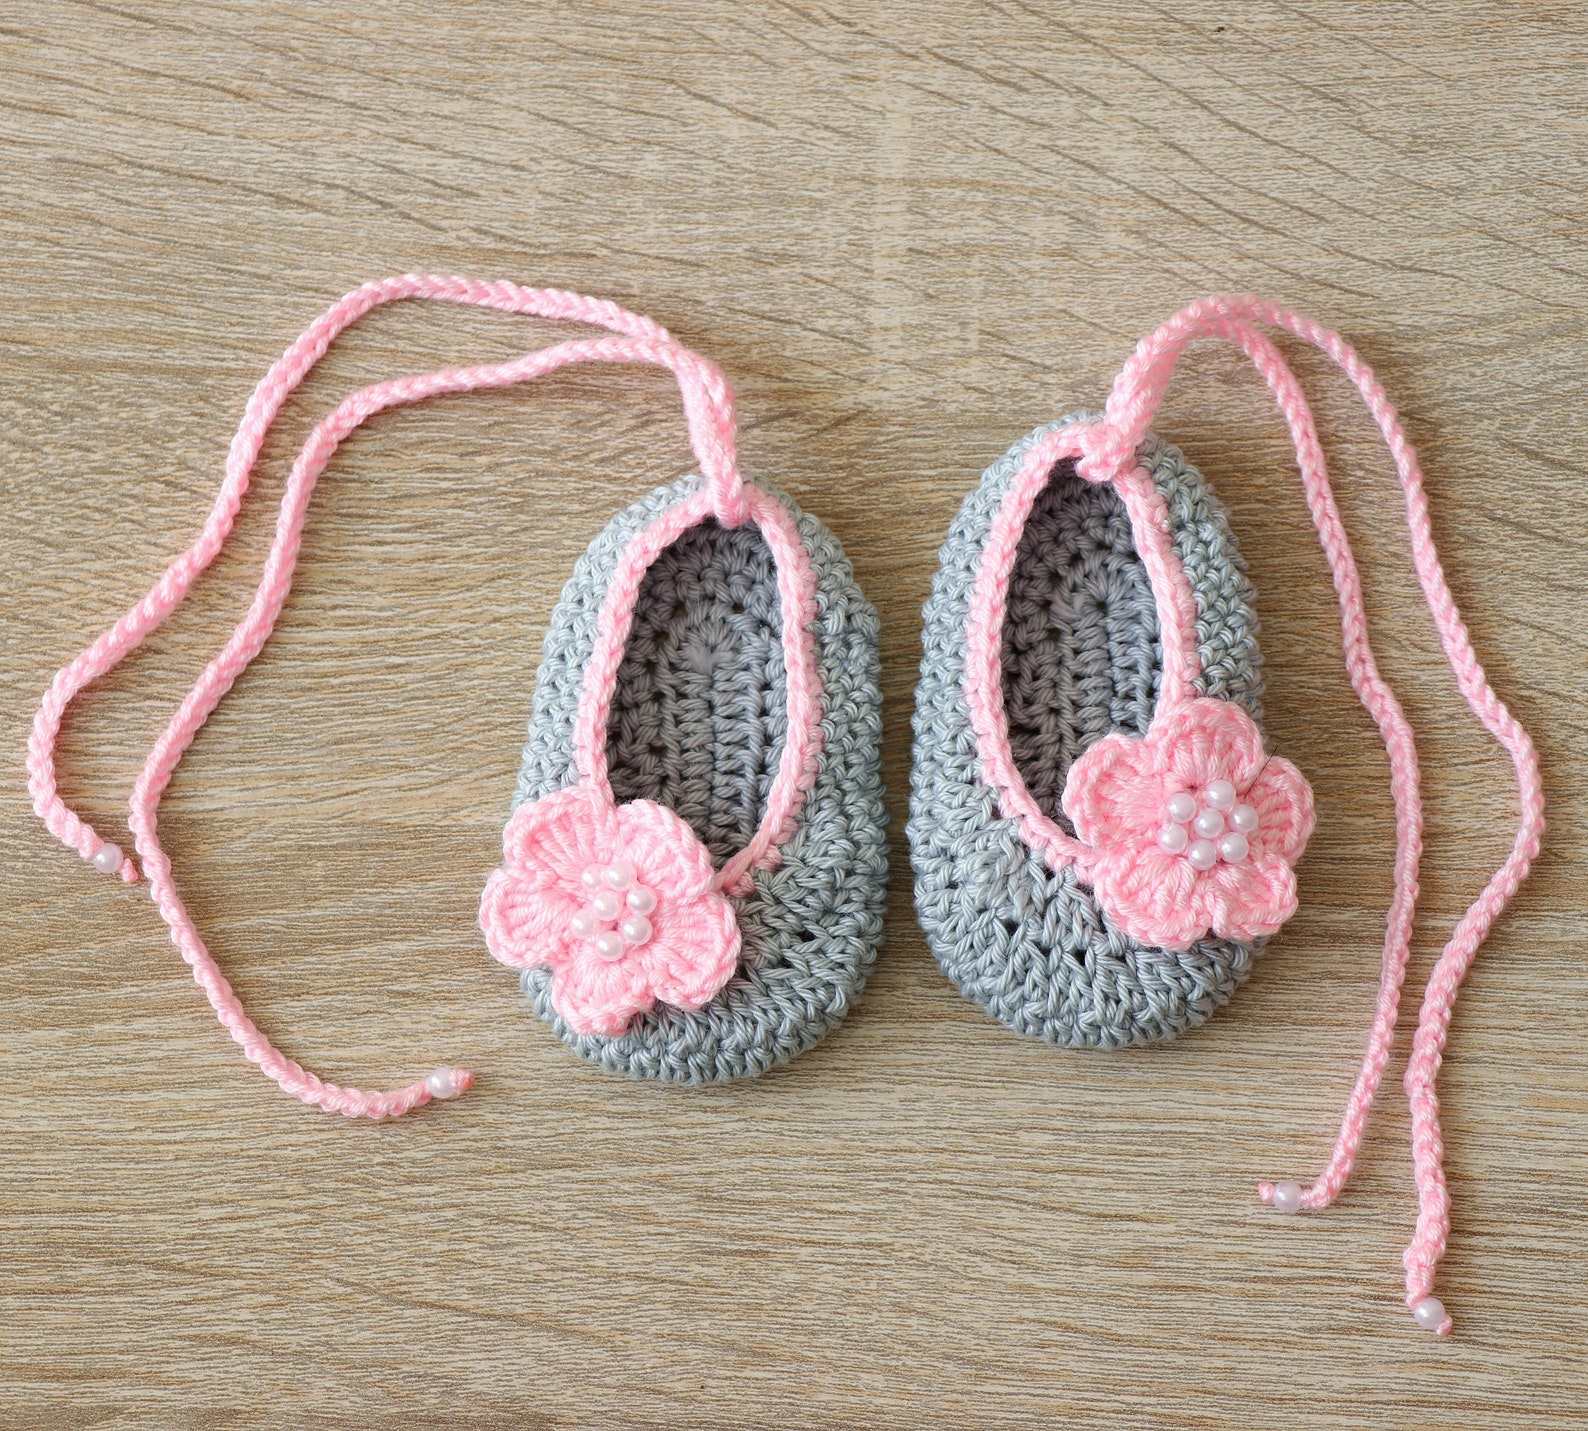 mary janes and headband set - shoes and headband set - baby girl gift - ballet slippers - baby girl set - baby photo prop - pink